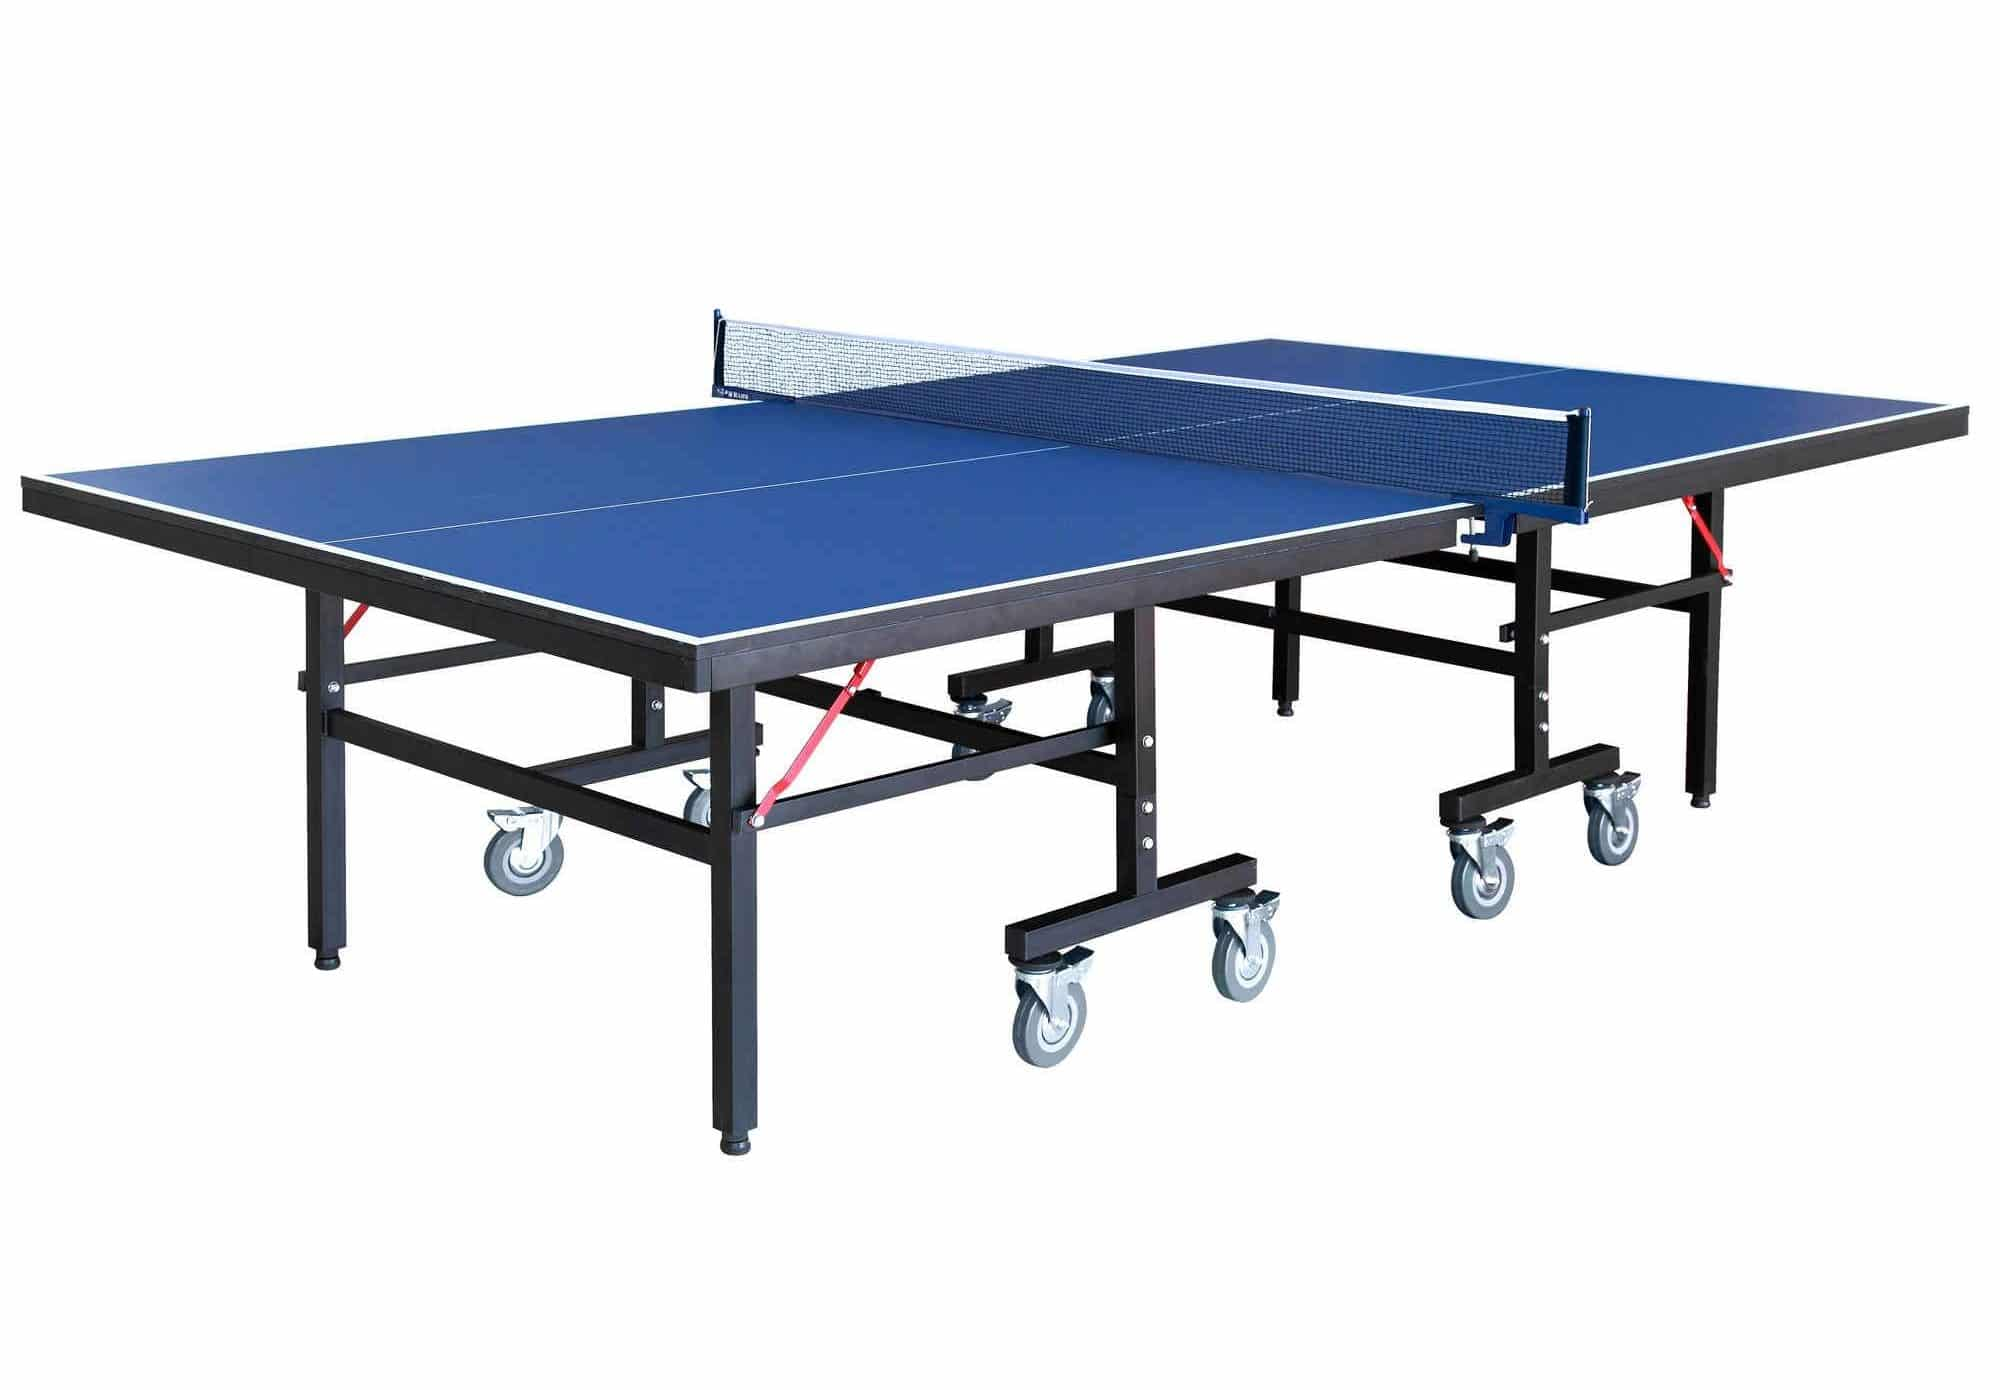 sportcraft ping pong table instructions